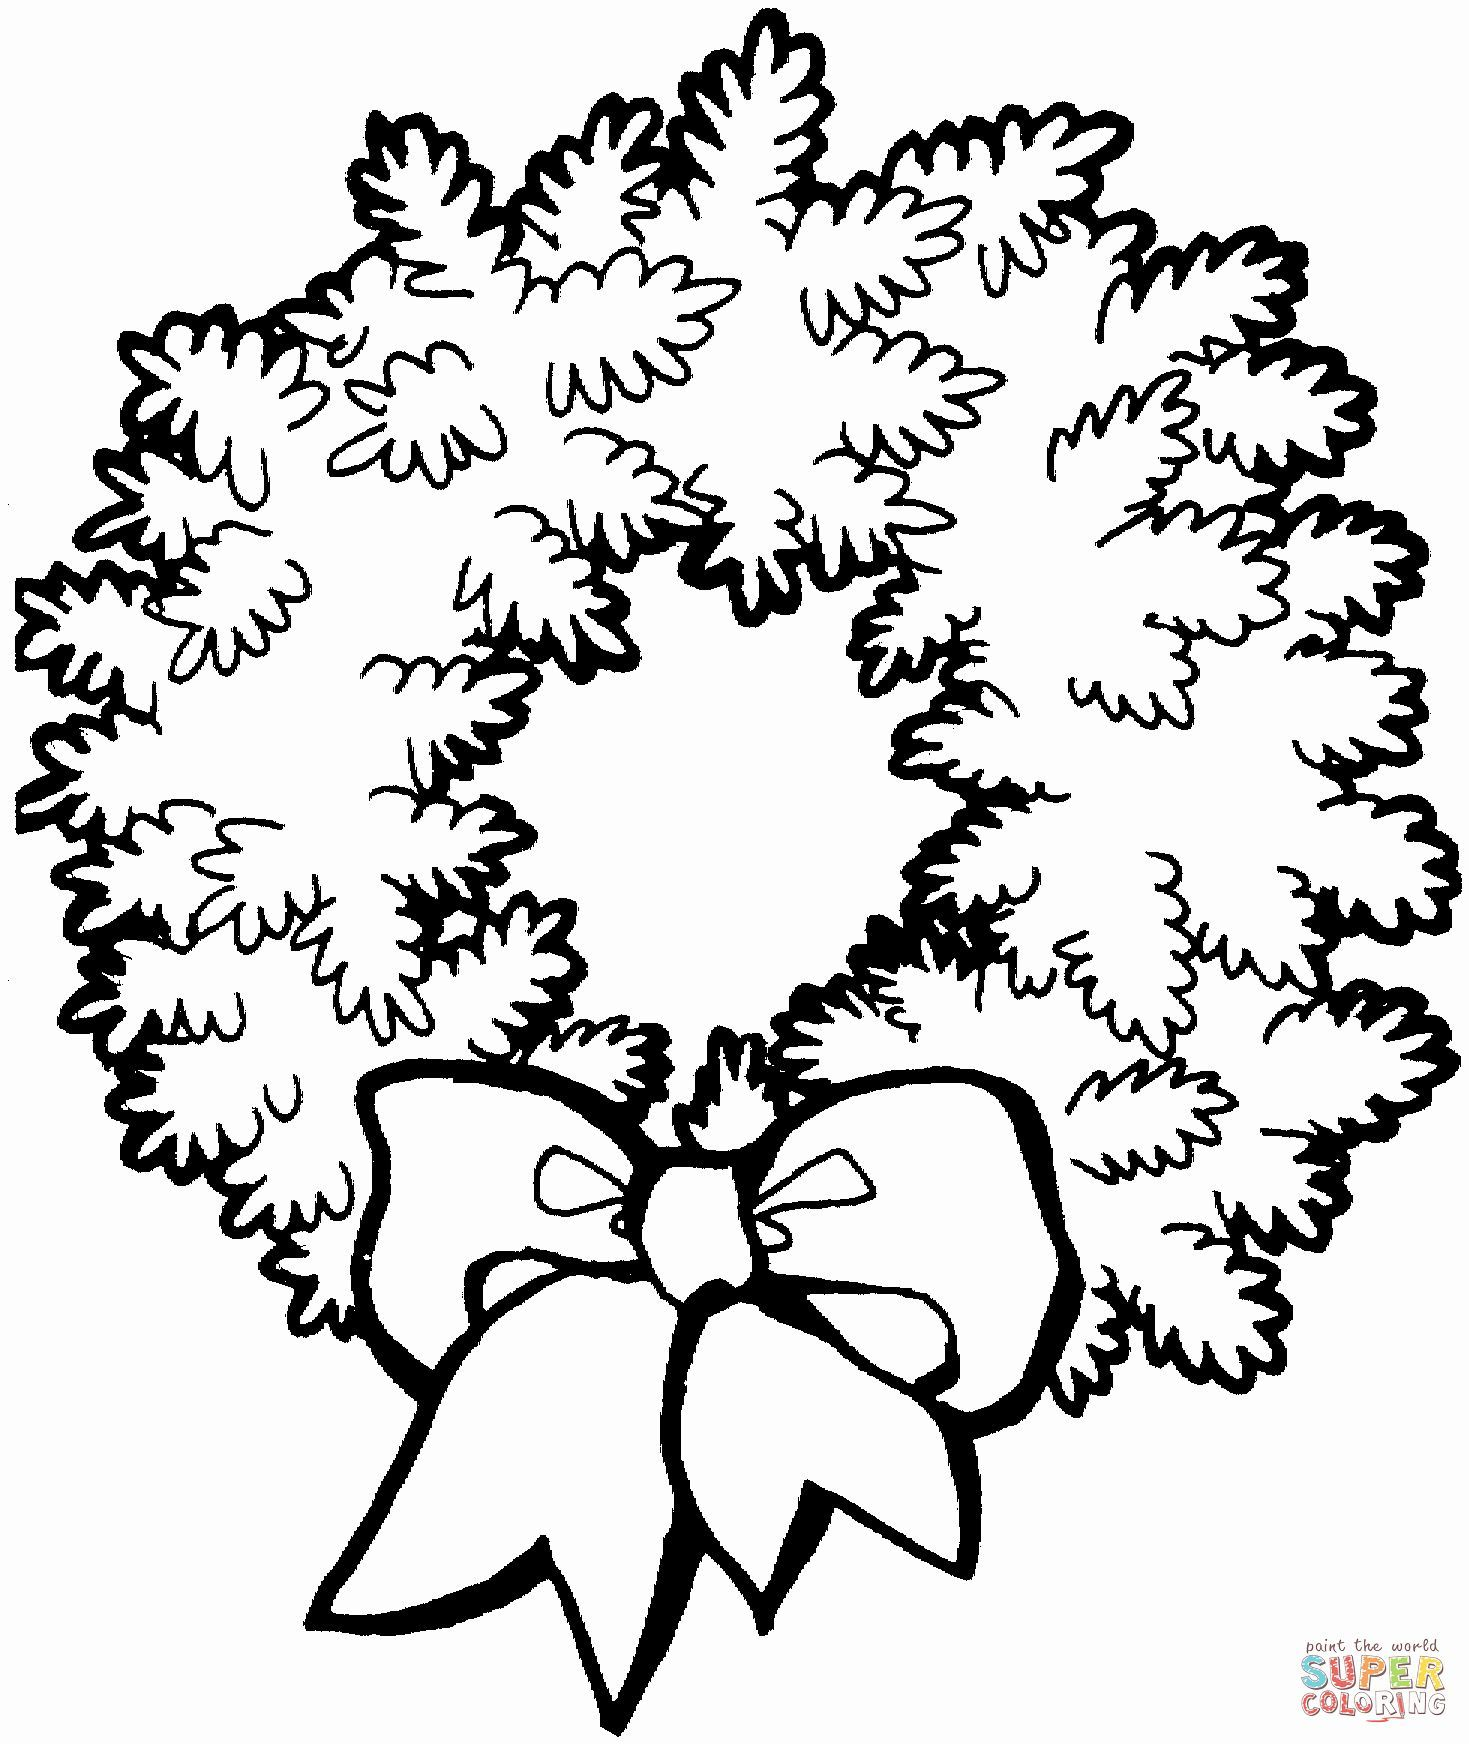 Advent Wreath Coloring Page New Cozy Advent Wreath Coloring Page Free Christmas Reci In 2021 Coloring Pages Printable Christmas Coloring Pages Printable Coloring Pages